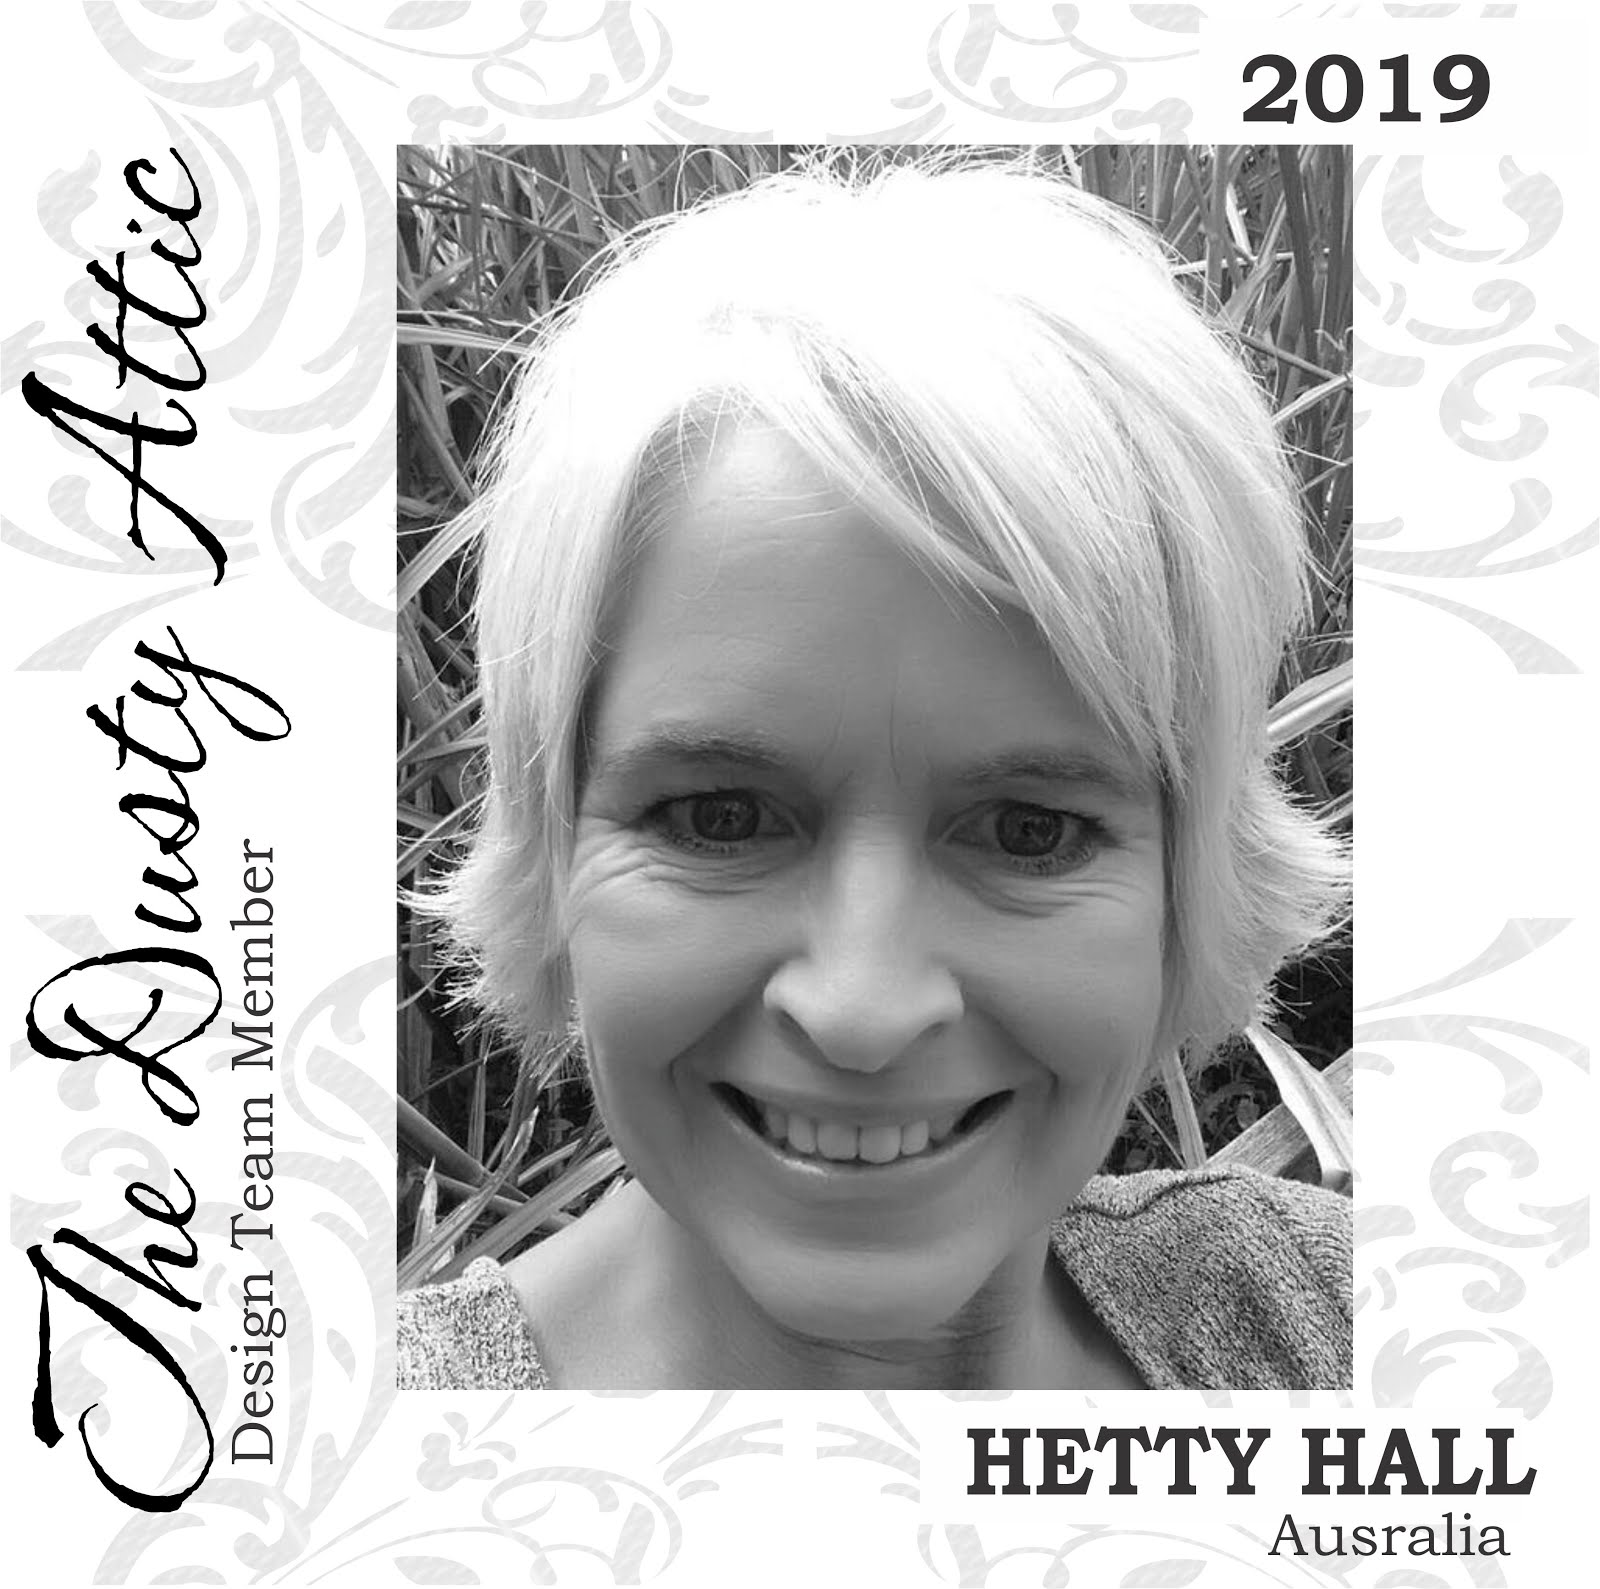 Hetty Hall